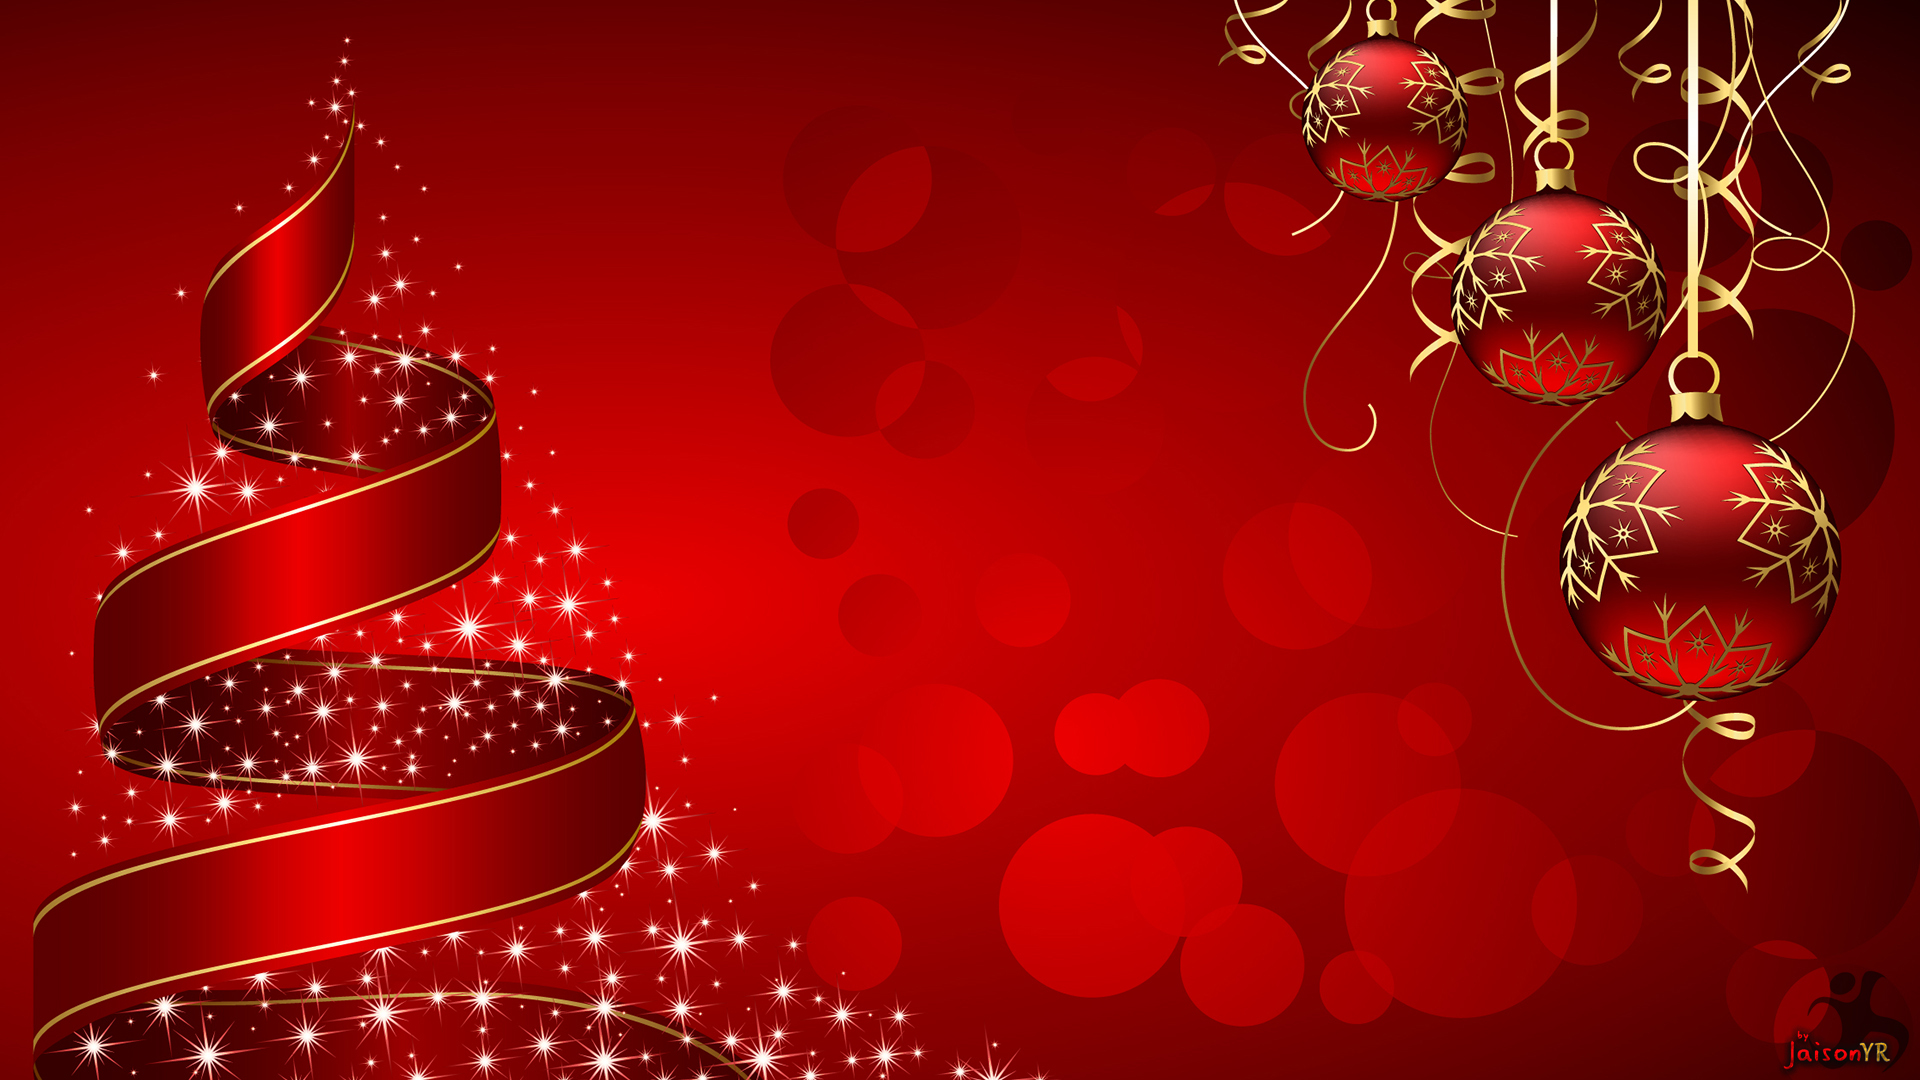 Christmas decorations and ribbon on Christmas wallpapers 1920x1080